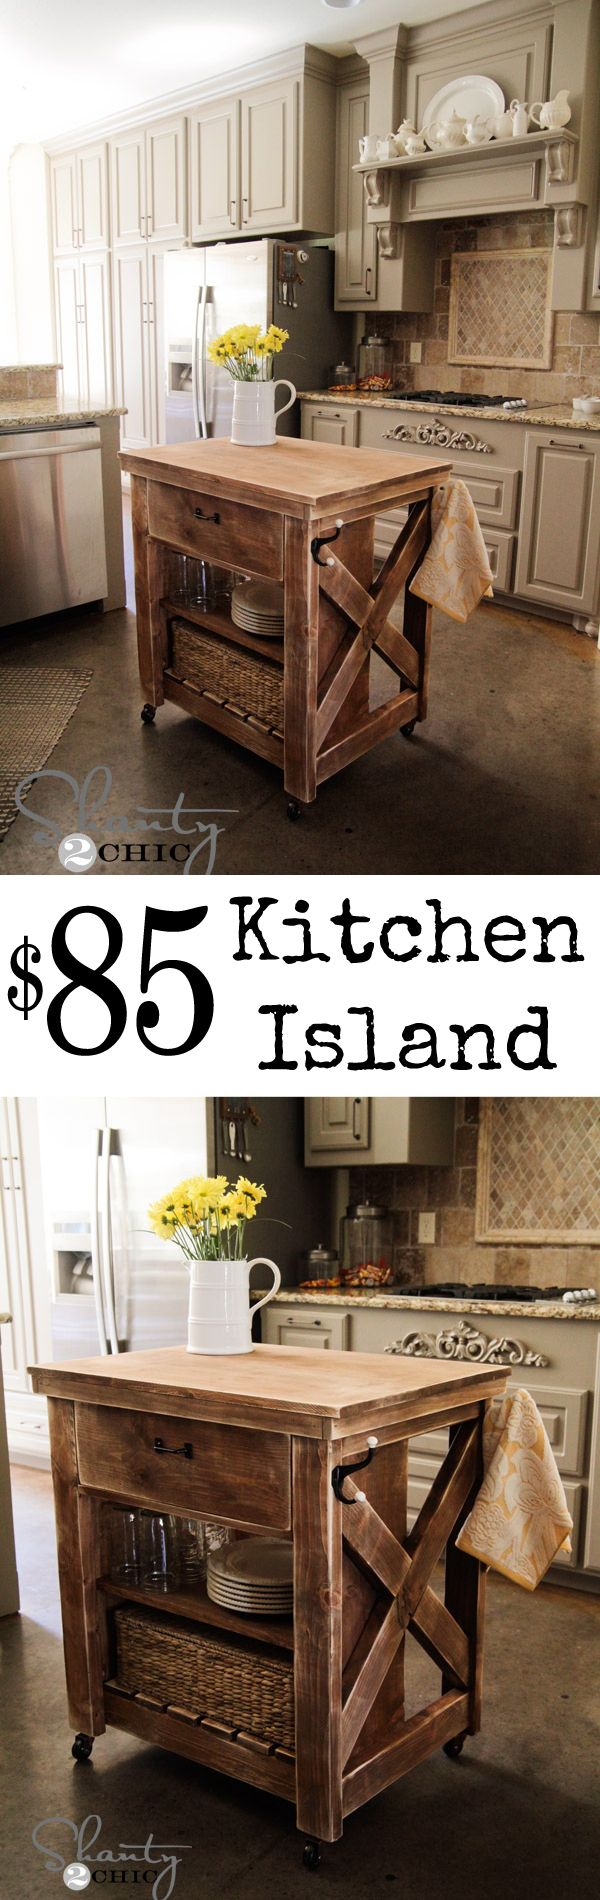 10 Modest Kitchen Area Organization And DIY Storage Ideas 7. Rustic Kitchen  IslandKitchen RedoKitchen IslandsKitchen IdeasPottery Barn ...